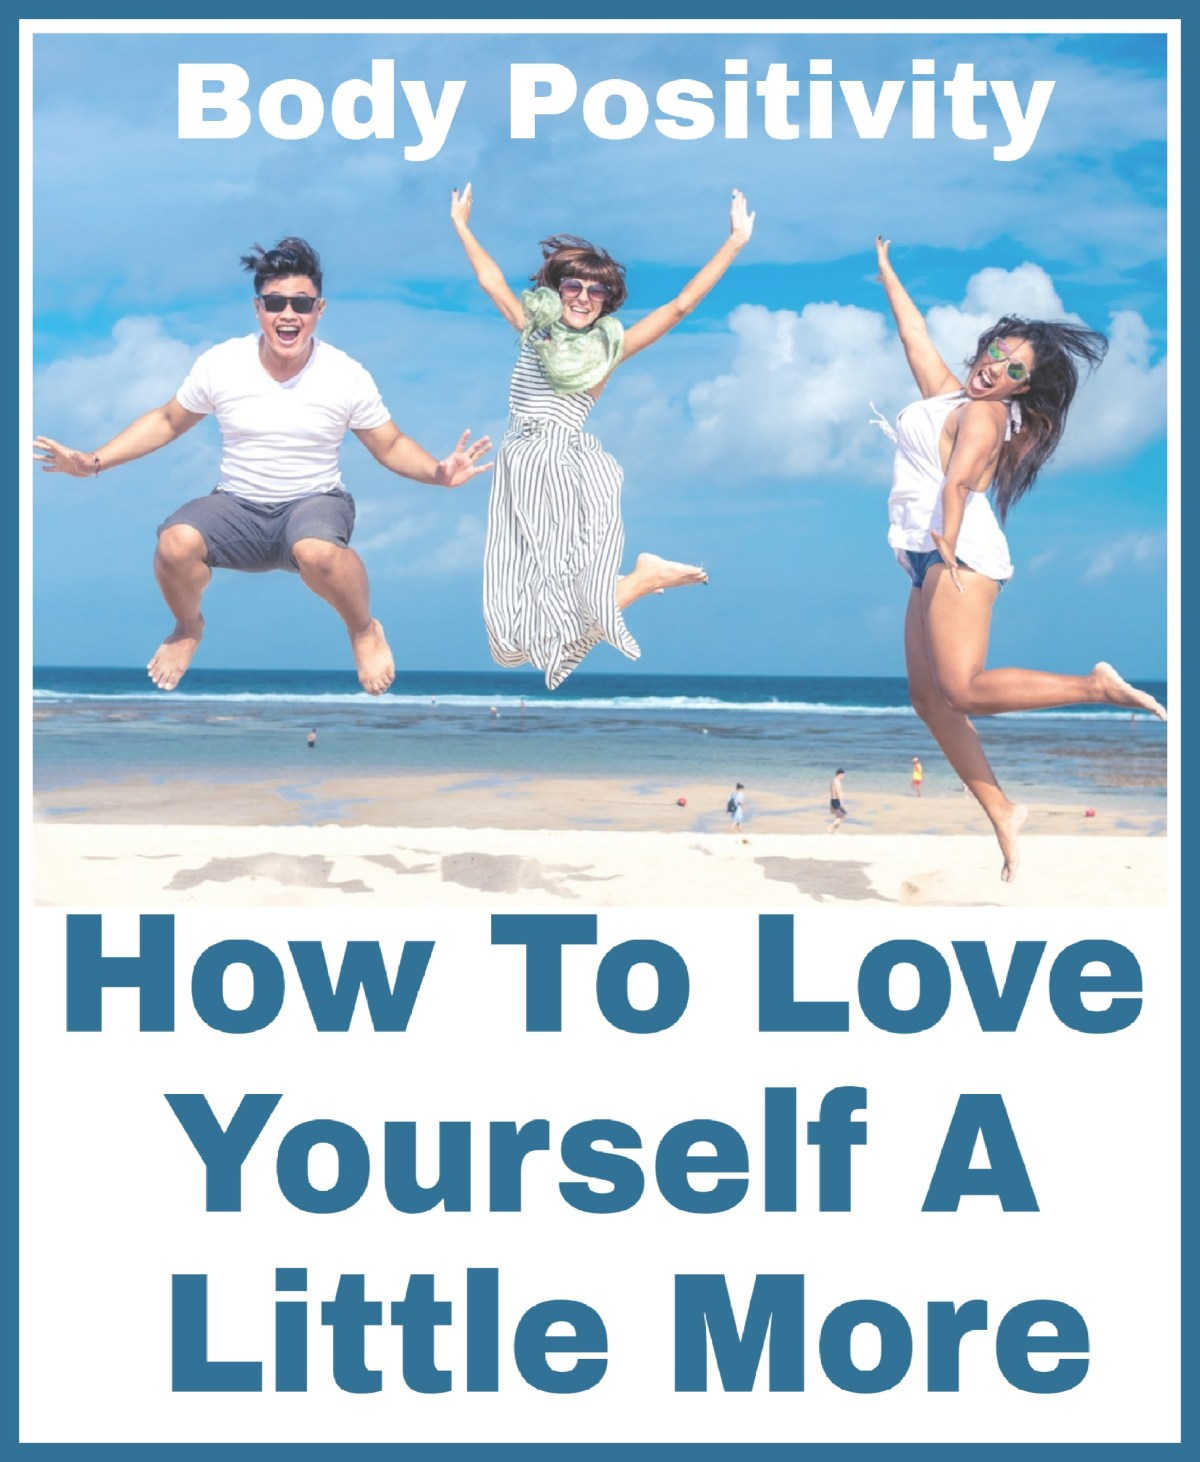 Body Positivity: How To Love Yourself A Little More